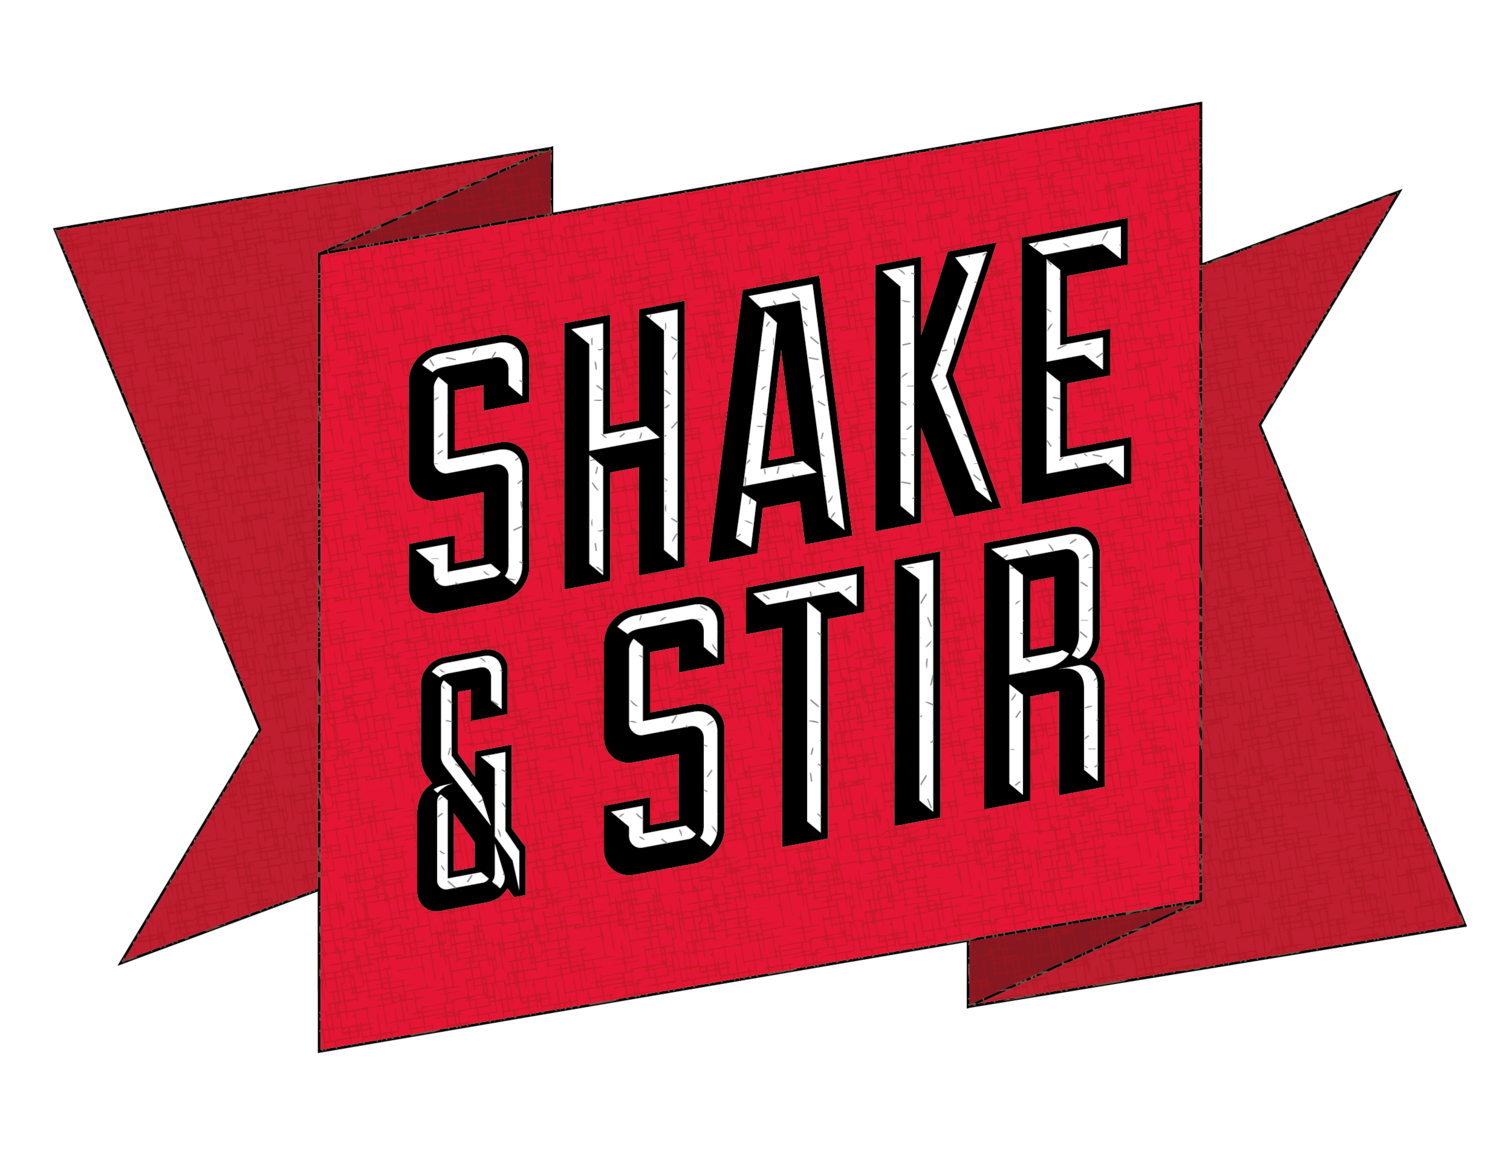 The Shake & Stir Vintage festival : By Stir! Events